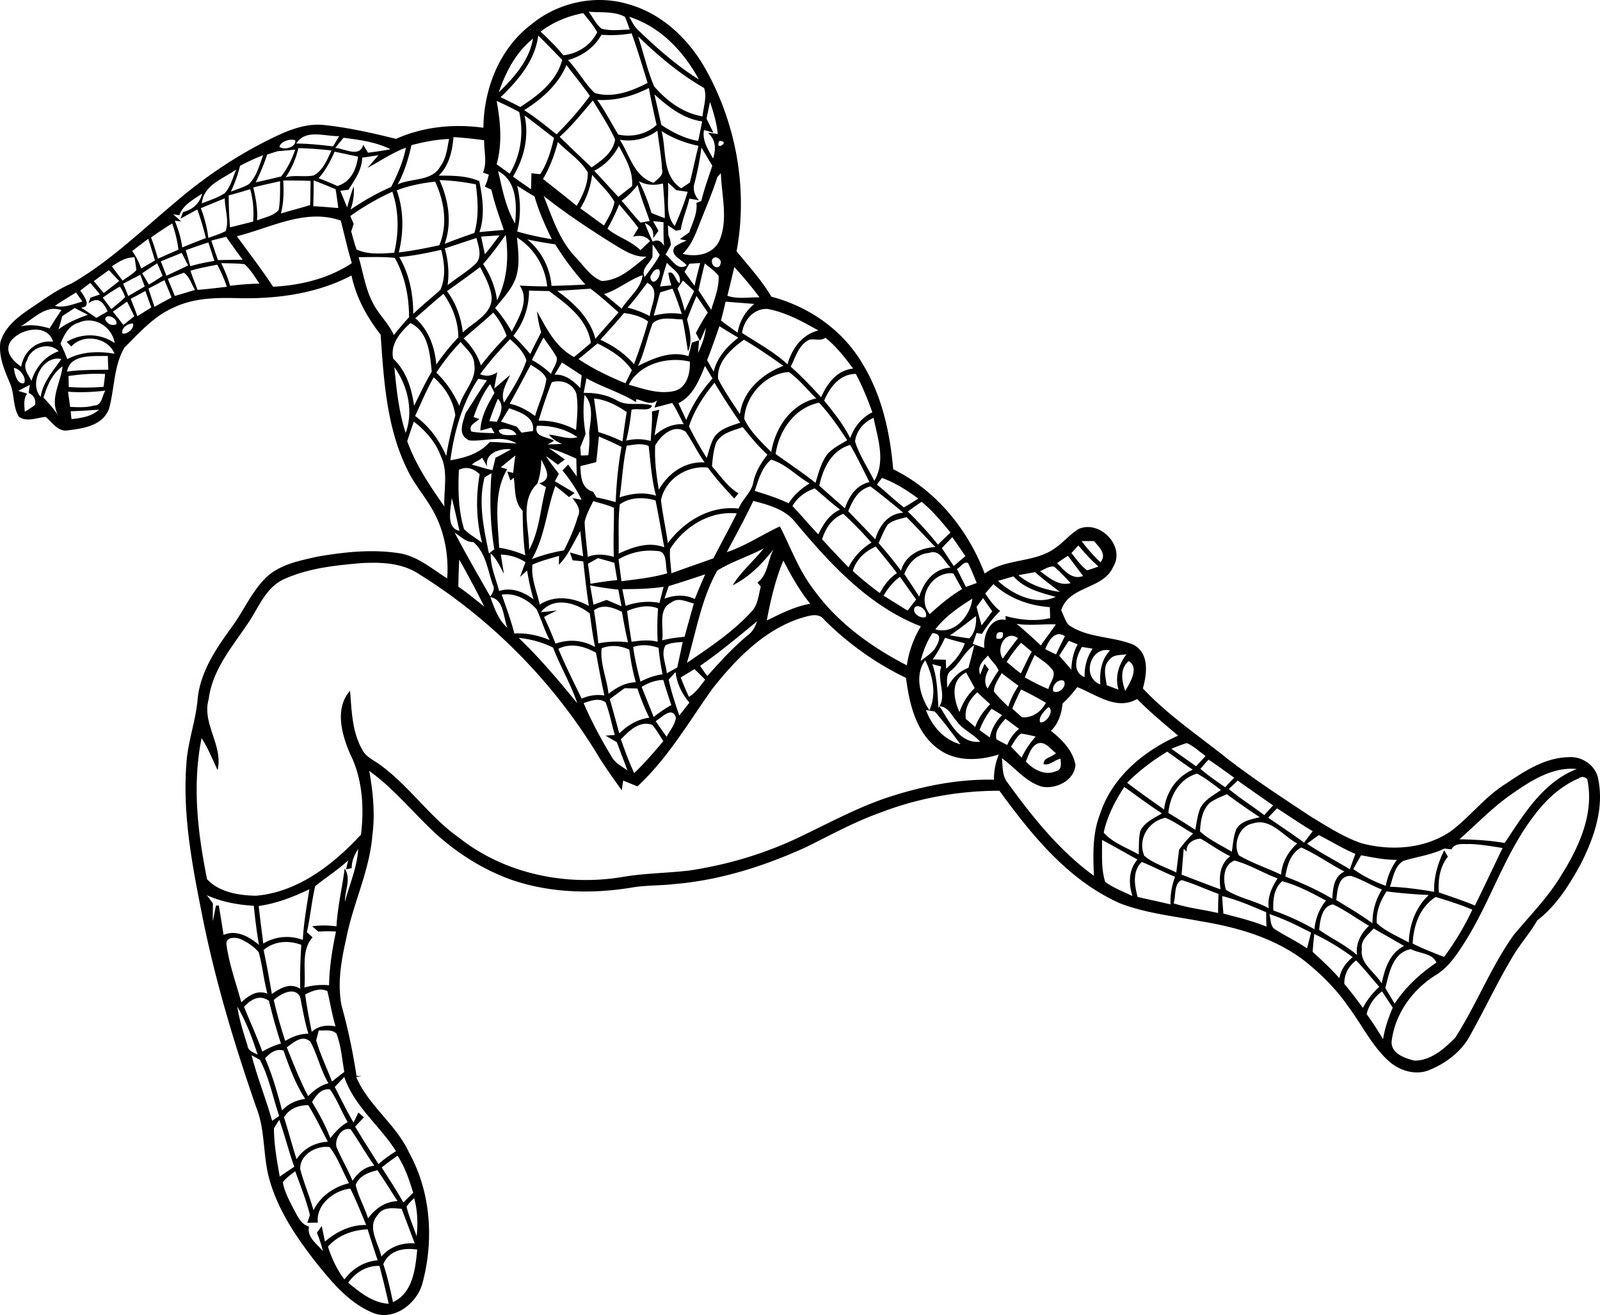 Spiderman coloring page: download for free print